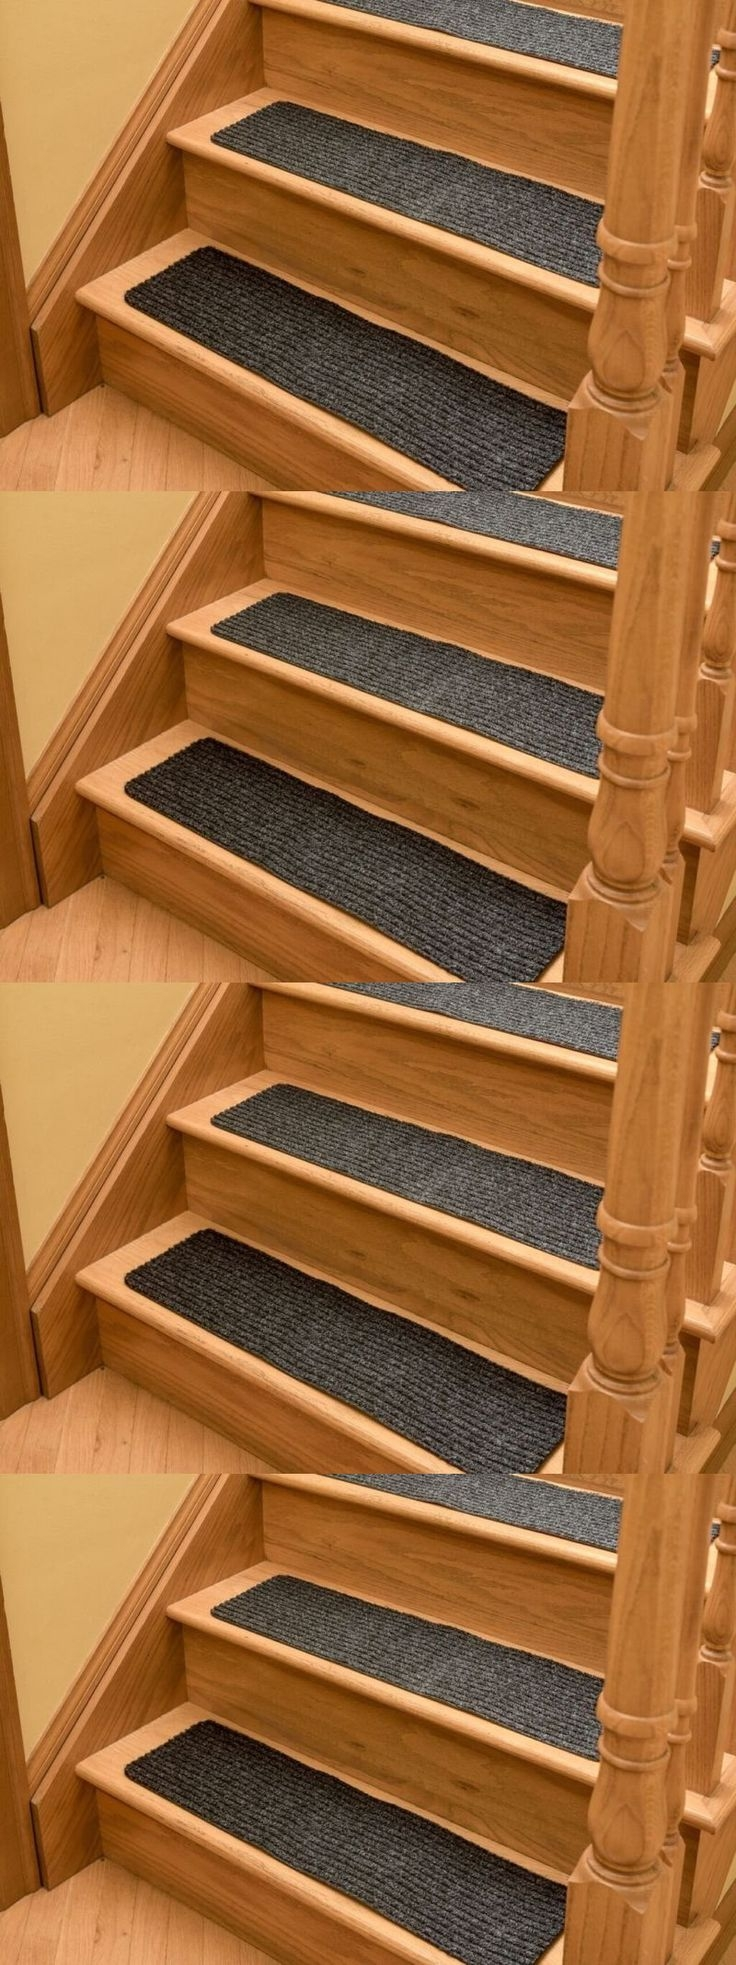 Top 25 Best Carpet Stair Treads Ideas On Pinterest Wood Stair Pertaining To Non Slip Stair Treads Carpets (View 19 of 20)